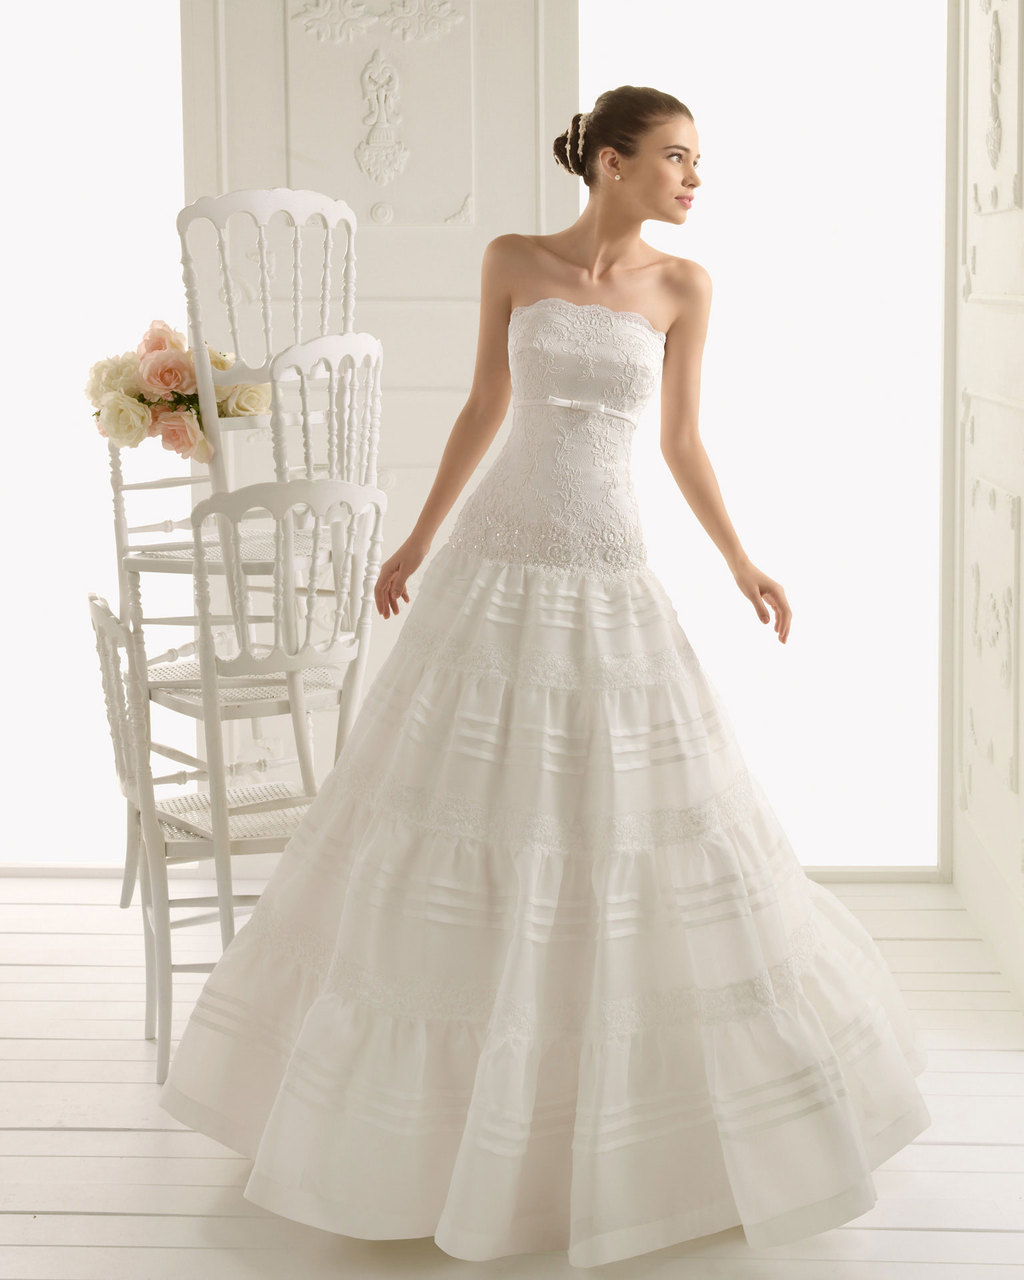 2013 wedding dress Aire Barcelona bridal gowns rumania